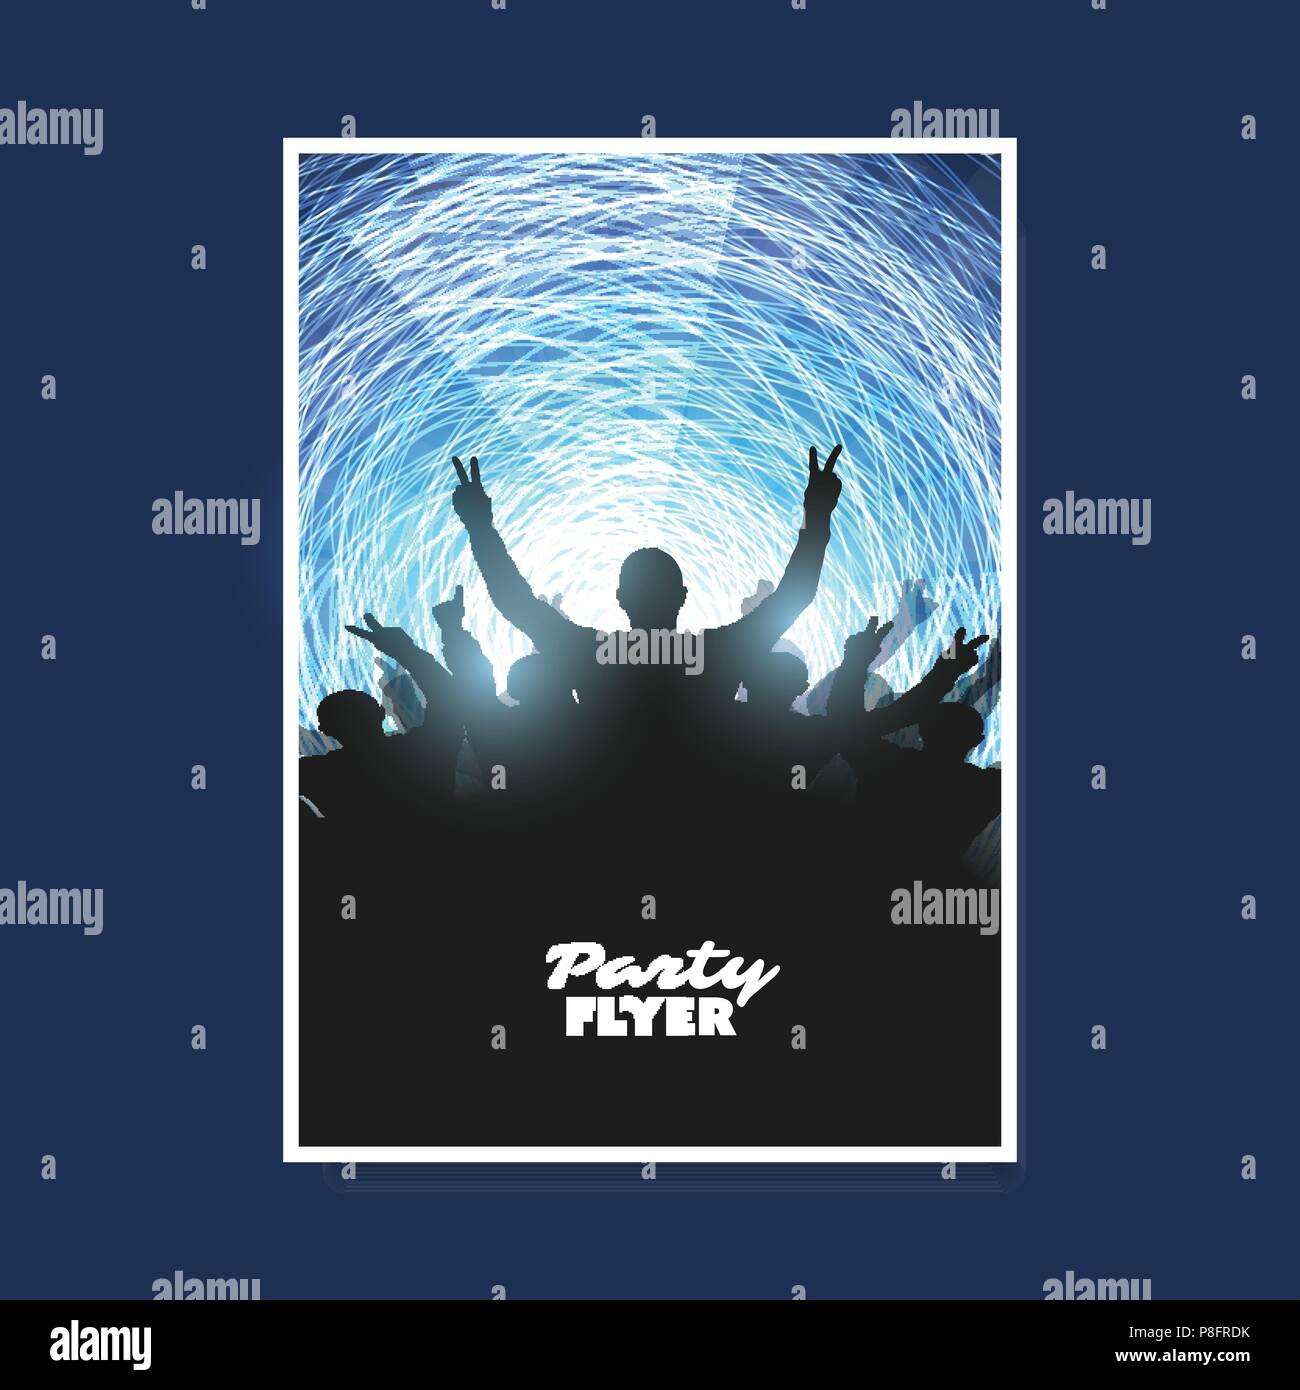 dark concert crowd silhouette nightlife abstract colorful party